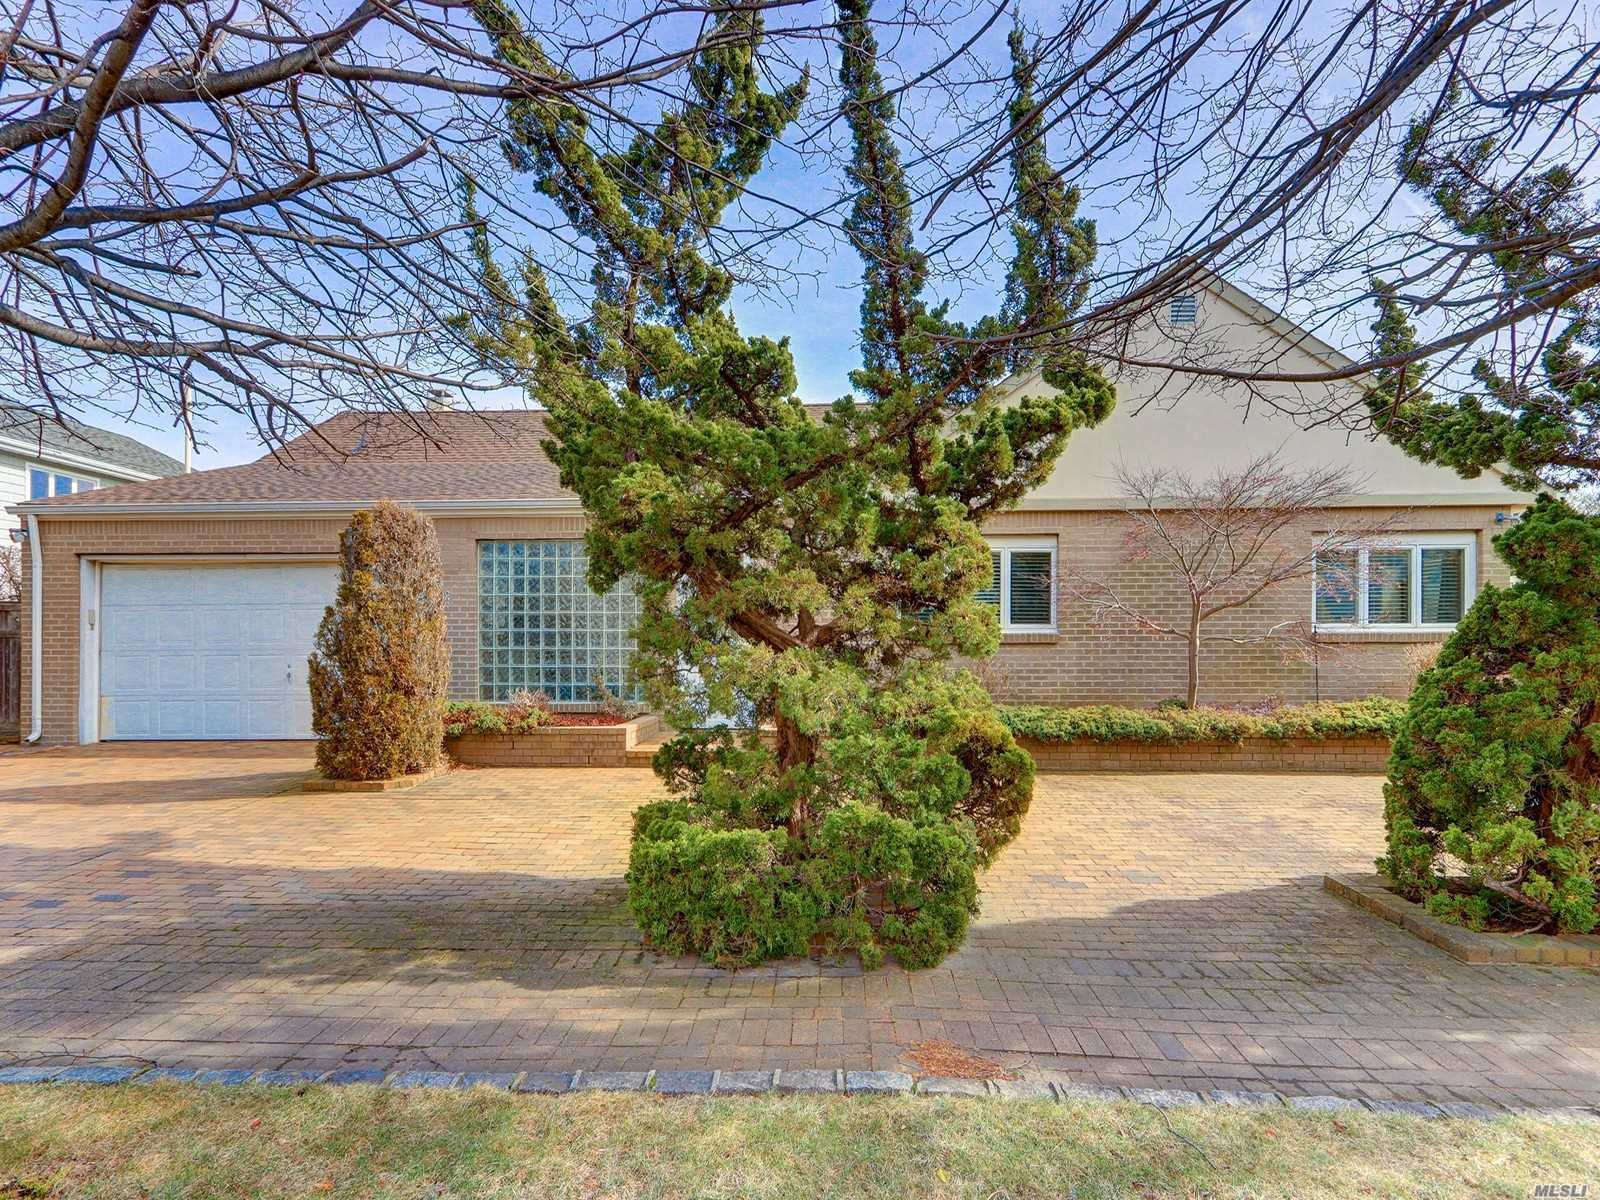 Your Oasis At The Beach! Why Drive To The Hamptons? Only 25 Miles From Nyc! Beautiful 3 Bedroom, 2 Full Bath Sprawling Ranch On Desirable Beach Block-Steps To Private Residents Beach And Boardwalk. This Home Offers Spacious Eik, Lr, Dr, Sitting Rm Overlooking Manicured Yard & Patio! Home Has Partially Radiant Heated Floors, New Roof & Staircase To 2nd Floor Bonus Room As Well As Huge Stand Up Attic! This Is The Perfect House For You! Spend The Summer Of 2019 In Your New Home! See Virtual Tour!!!